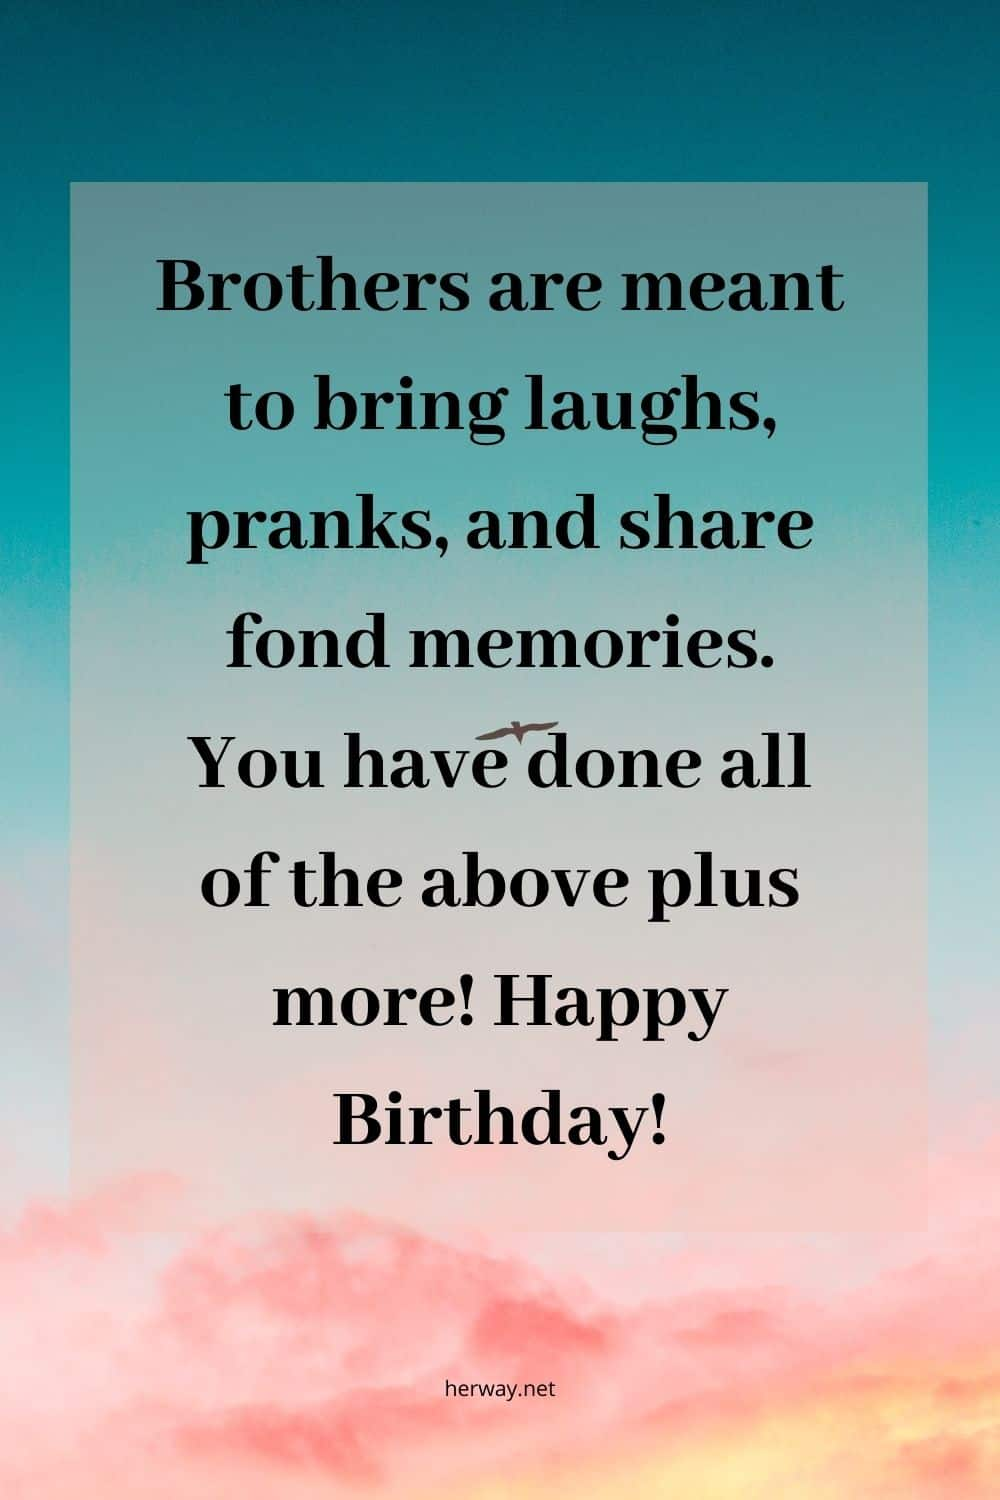 Birthday Wishes For Brother 150+ Wishes For His Special Day